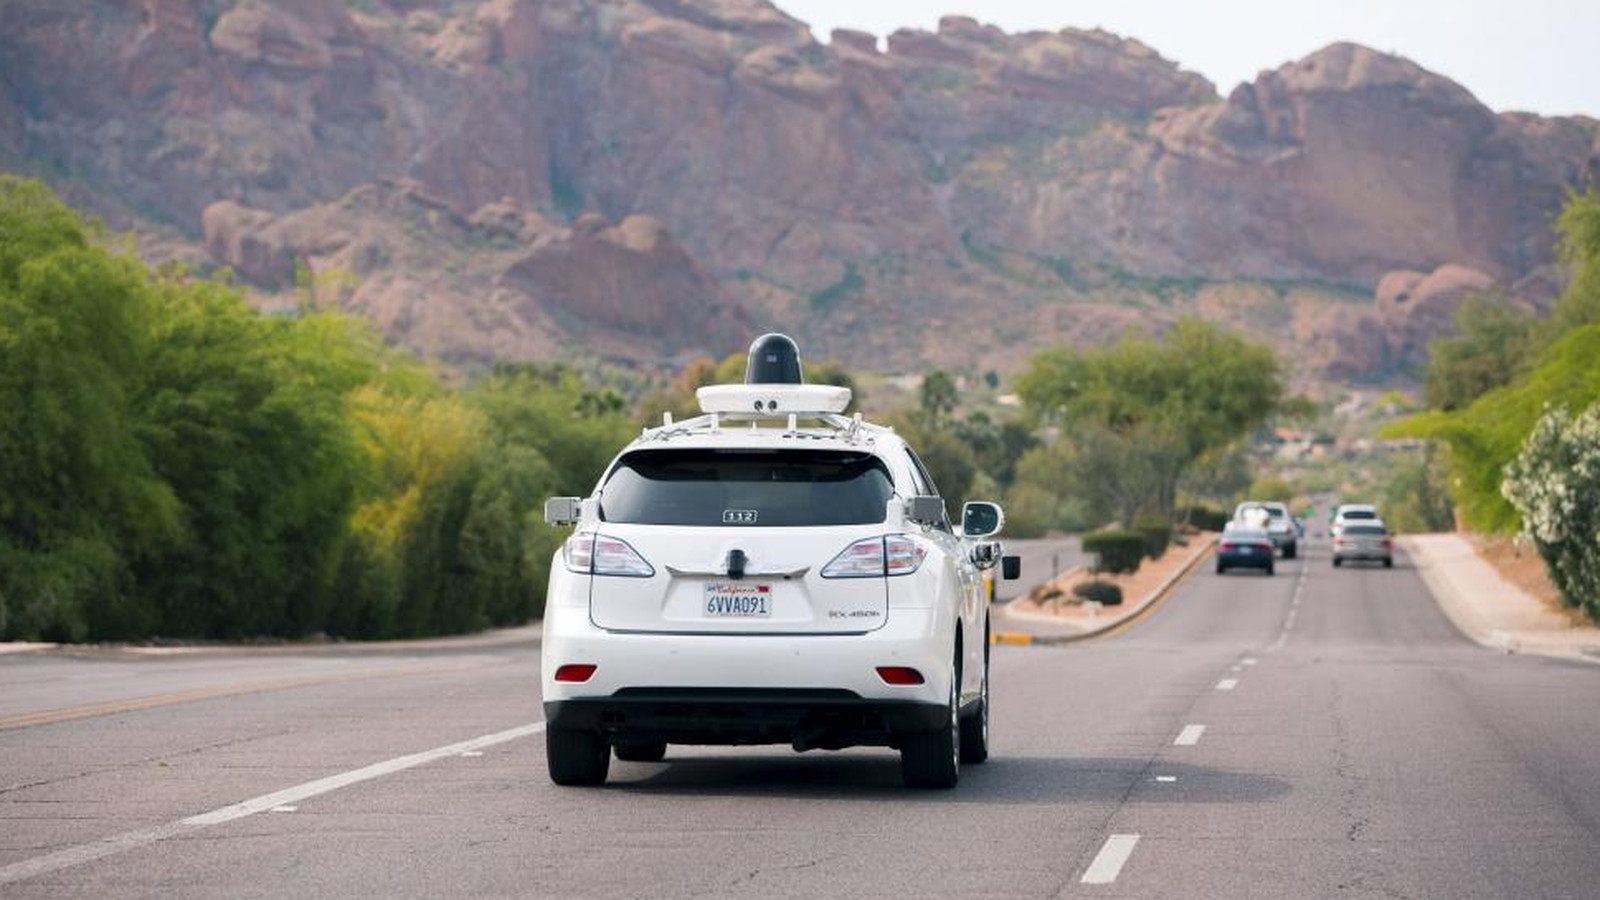 Voices clash at first public hearing on self-driving cars